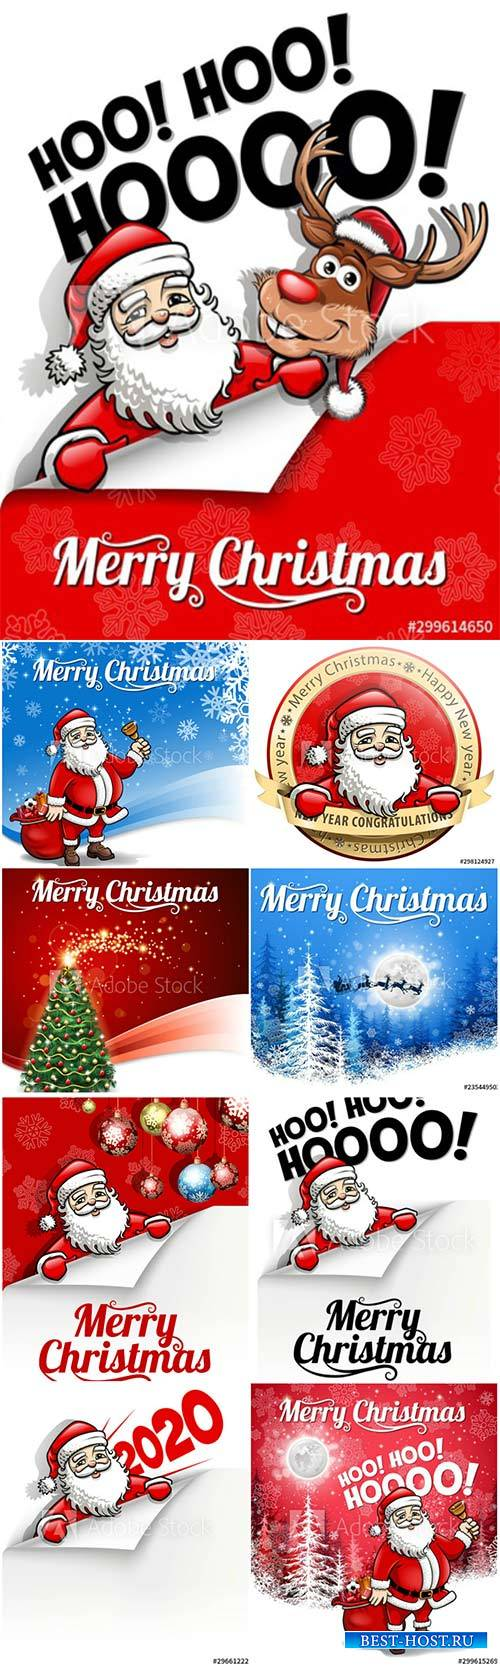 Santa's Christmas snowy greeting, Merry Christmas card